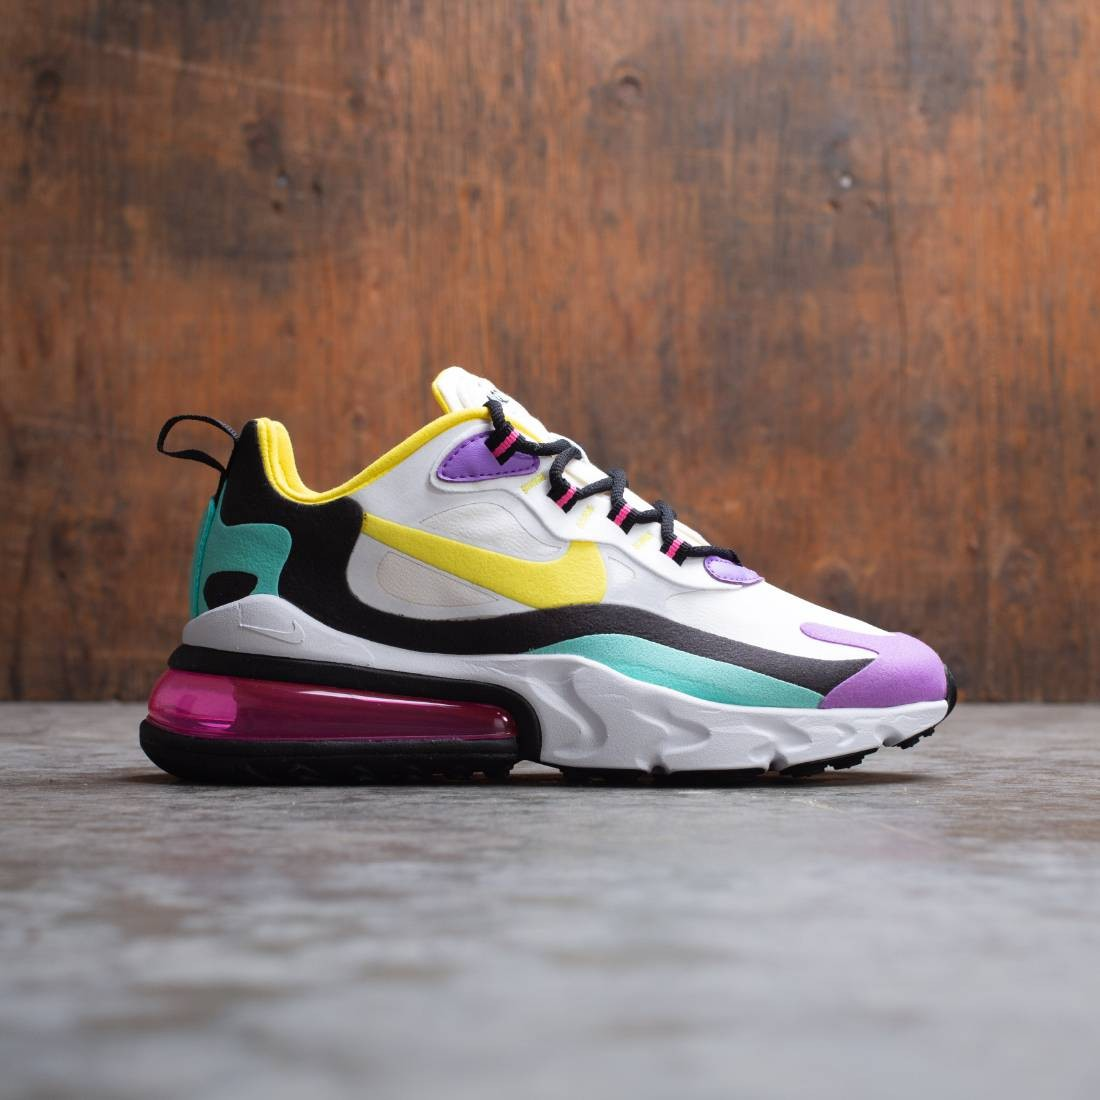 nike women's air max 270 react shoes grey/red/yellow